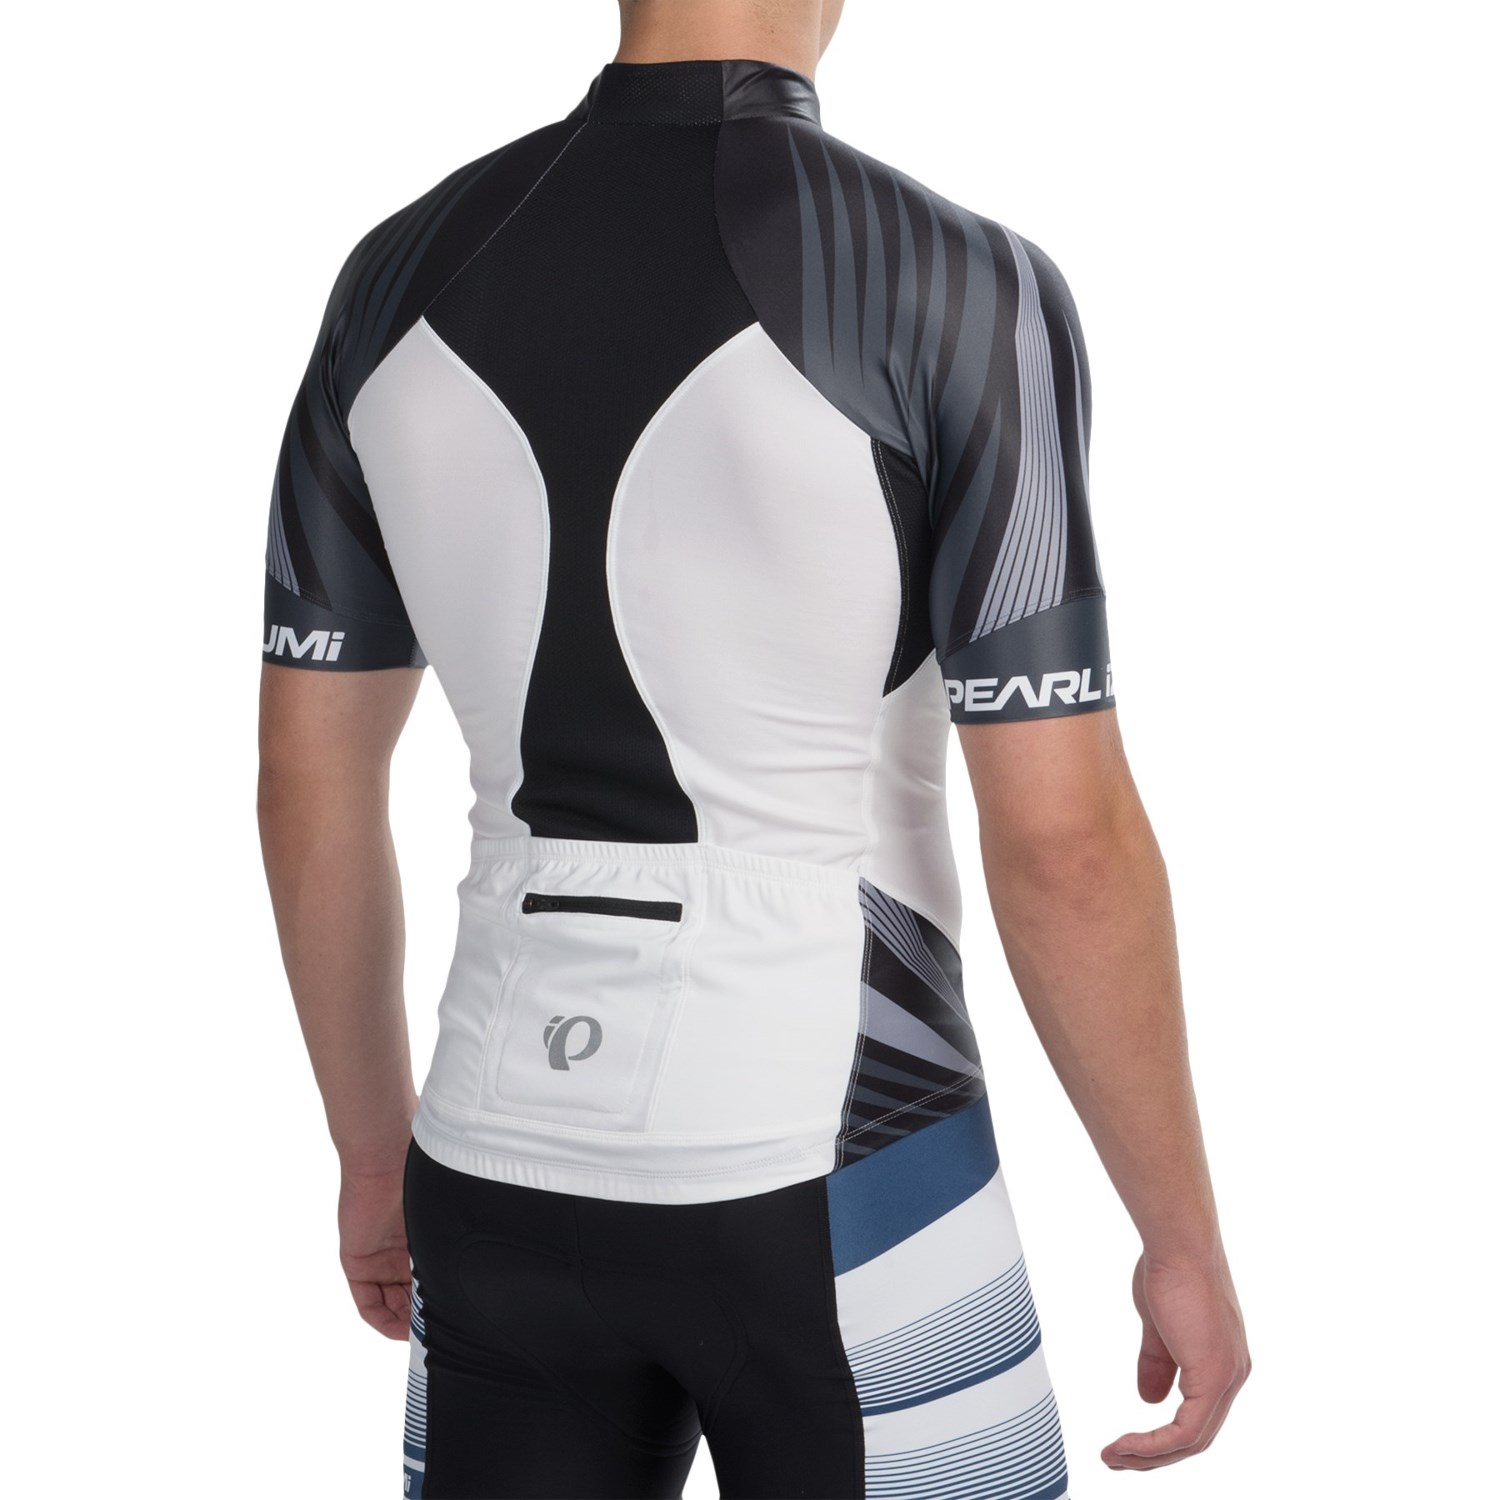 Pearl izumi p r o leader cycling jersey for men save 68 for Pearl izumi cycling shirt